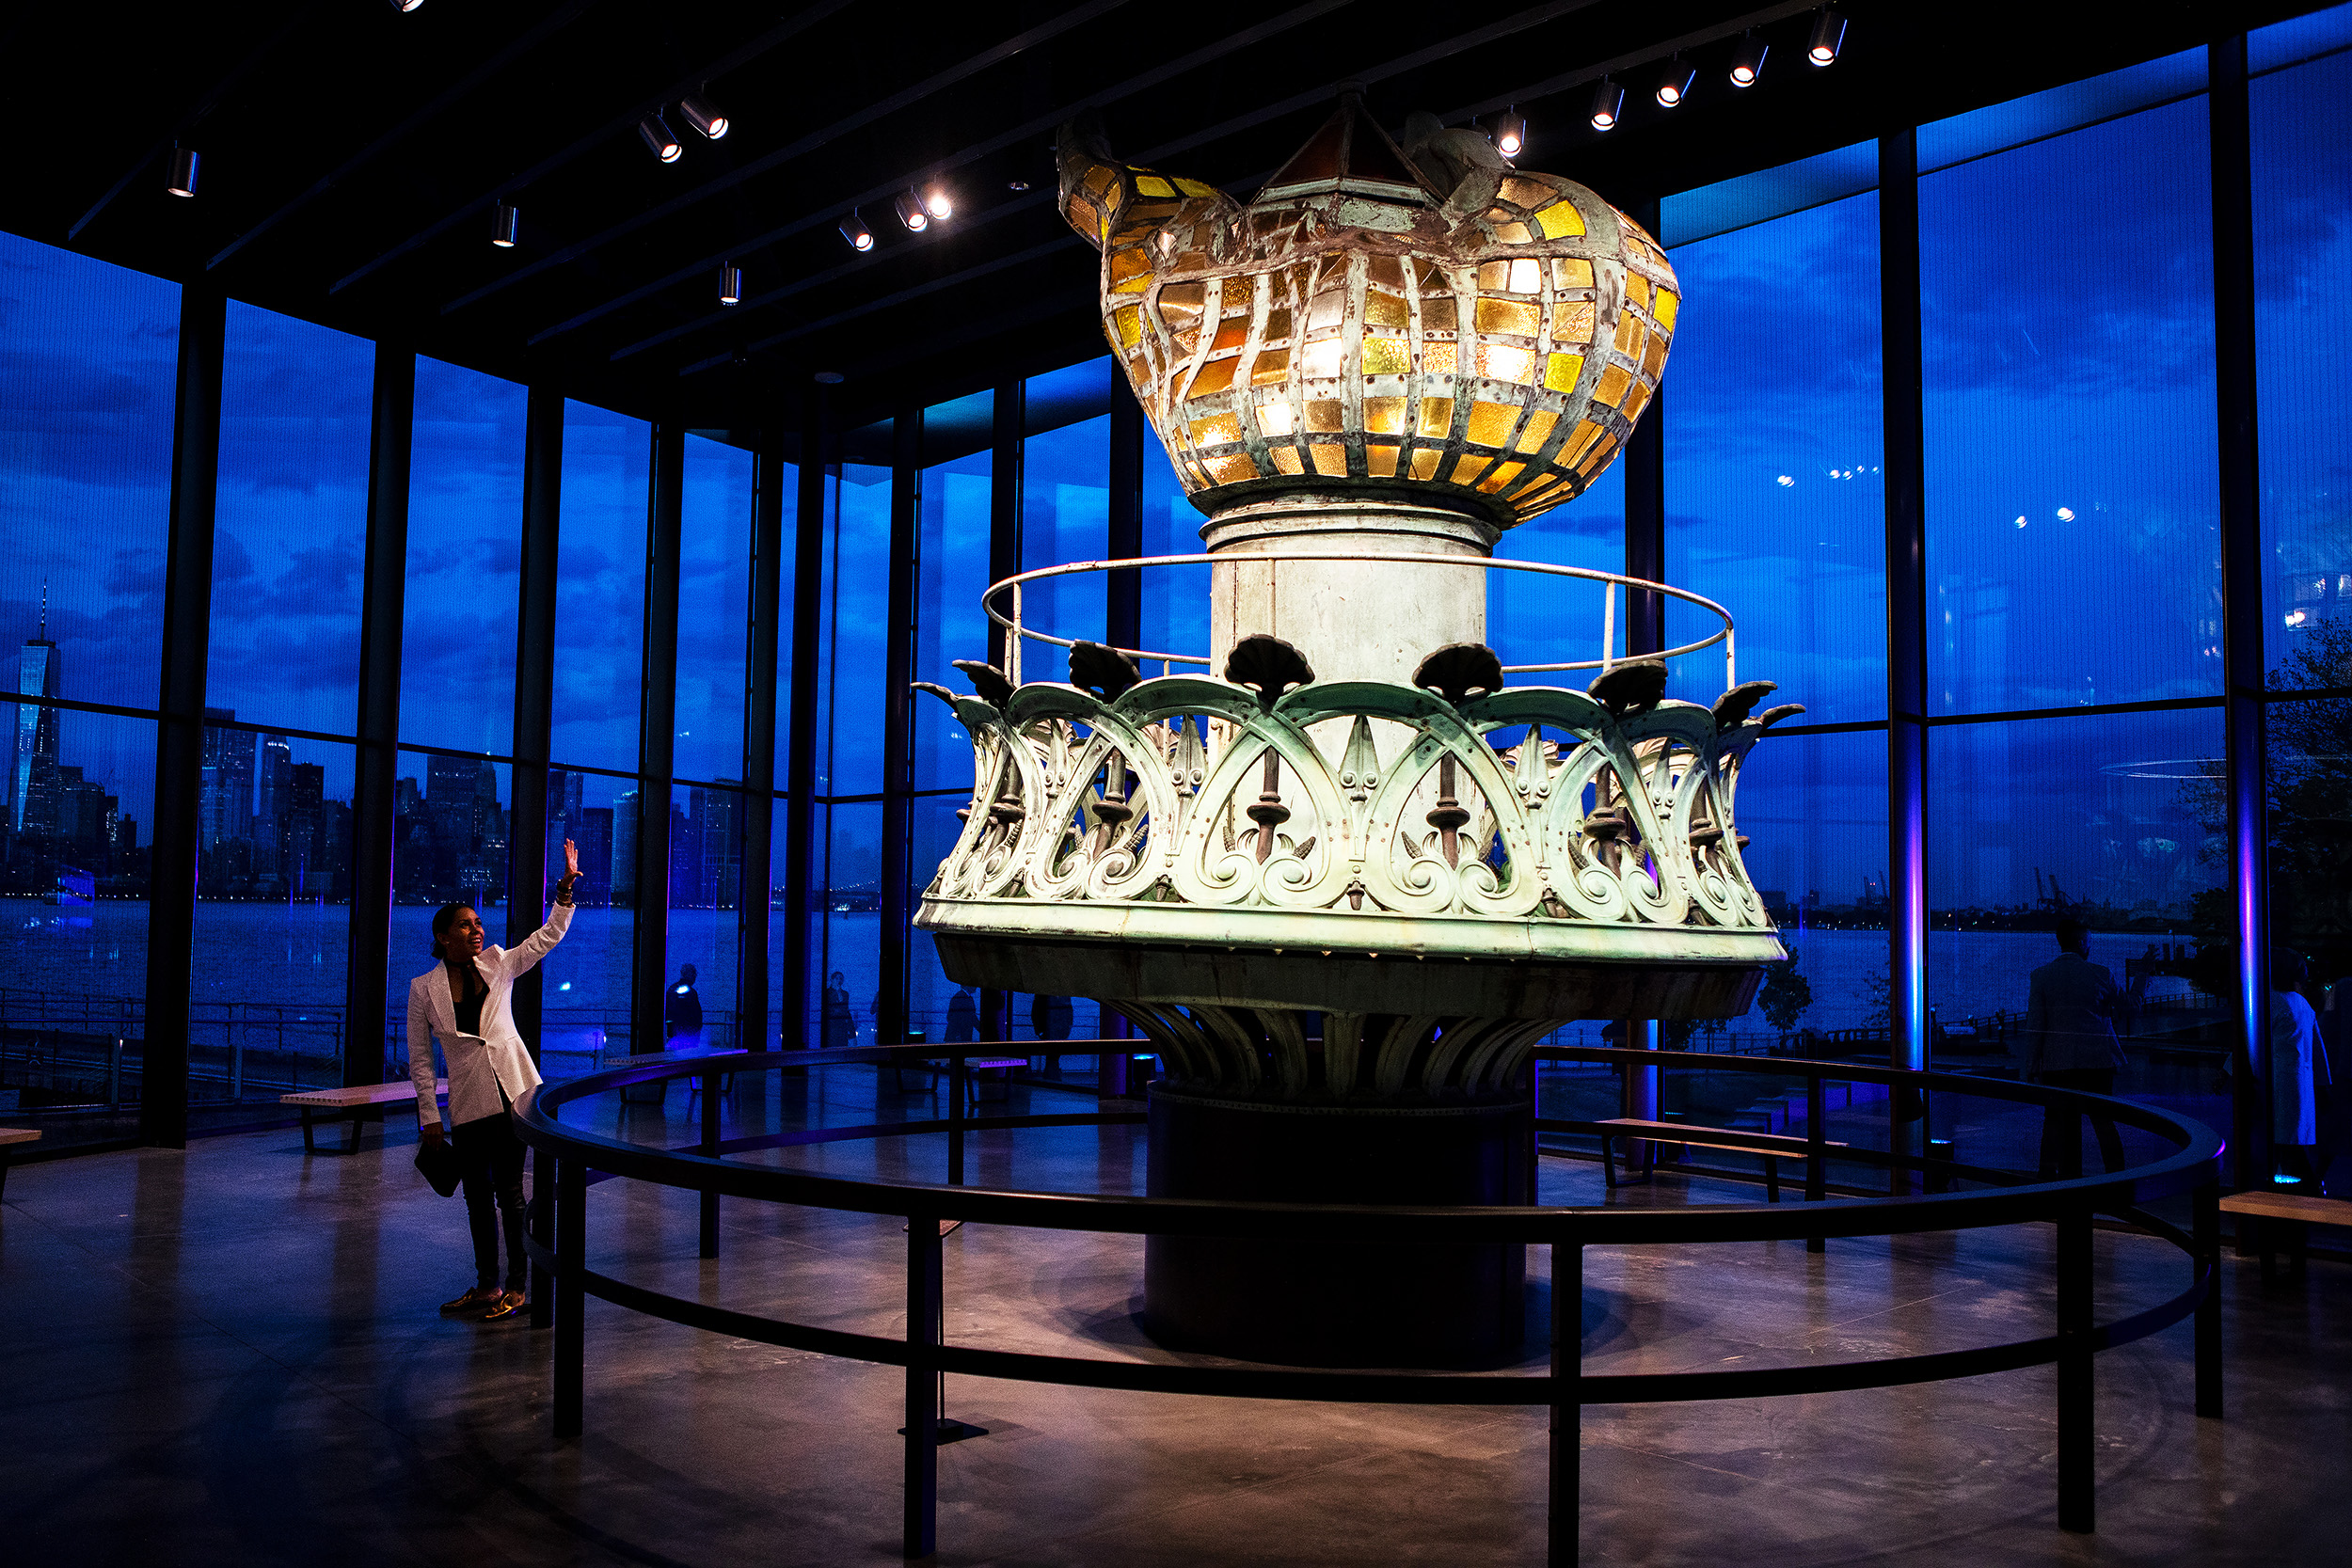 The original torch on display at the Statue of Liberty Museum on Liberty Island in New York, U.S.. The event feature keynote address from Oprah Winfrey and performances by Gloria Estefan and Tony Bennett.